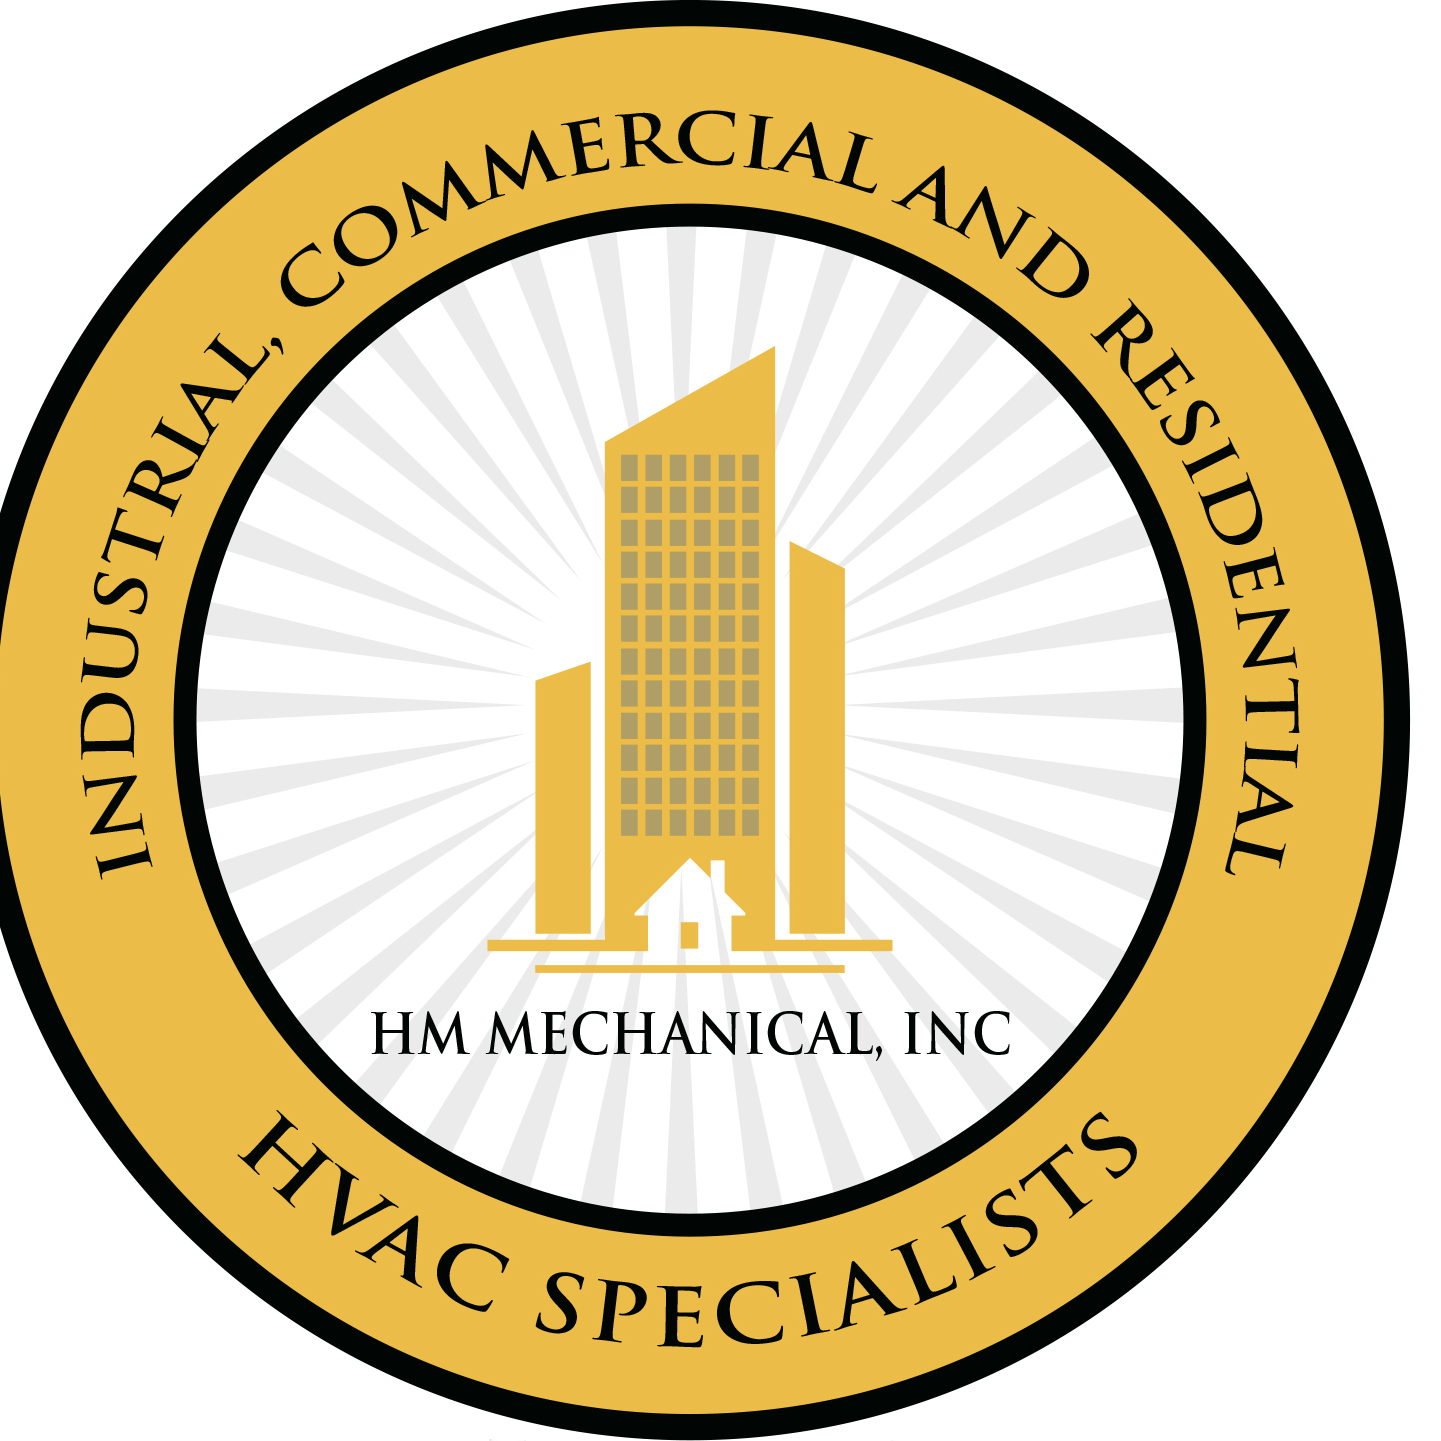 HM Mechanical, Inc.